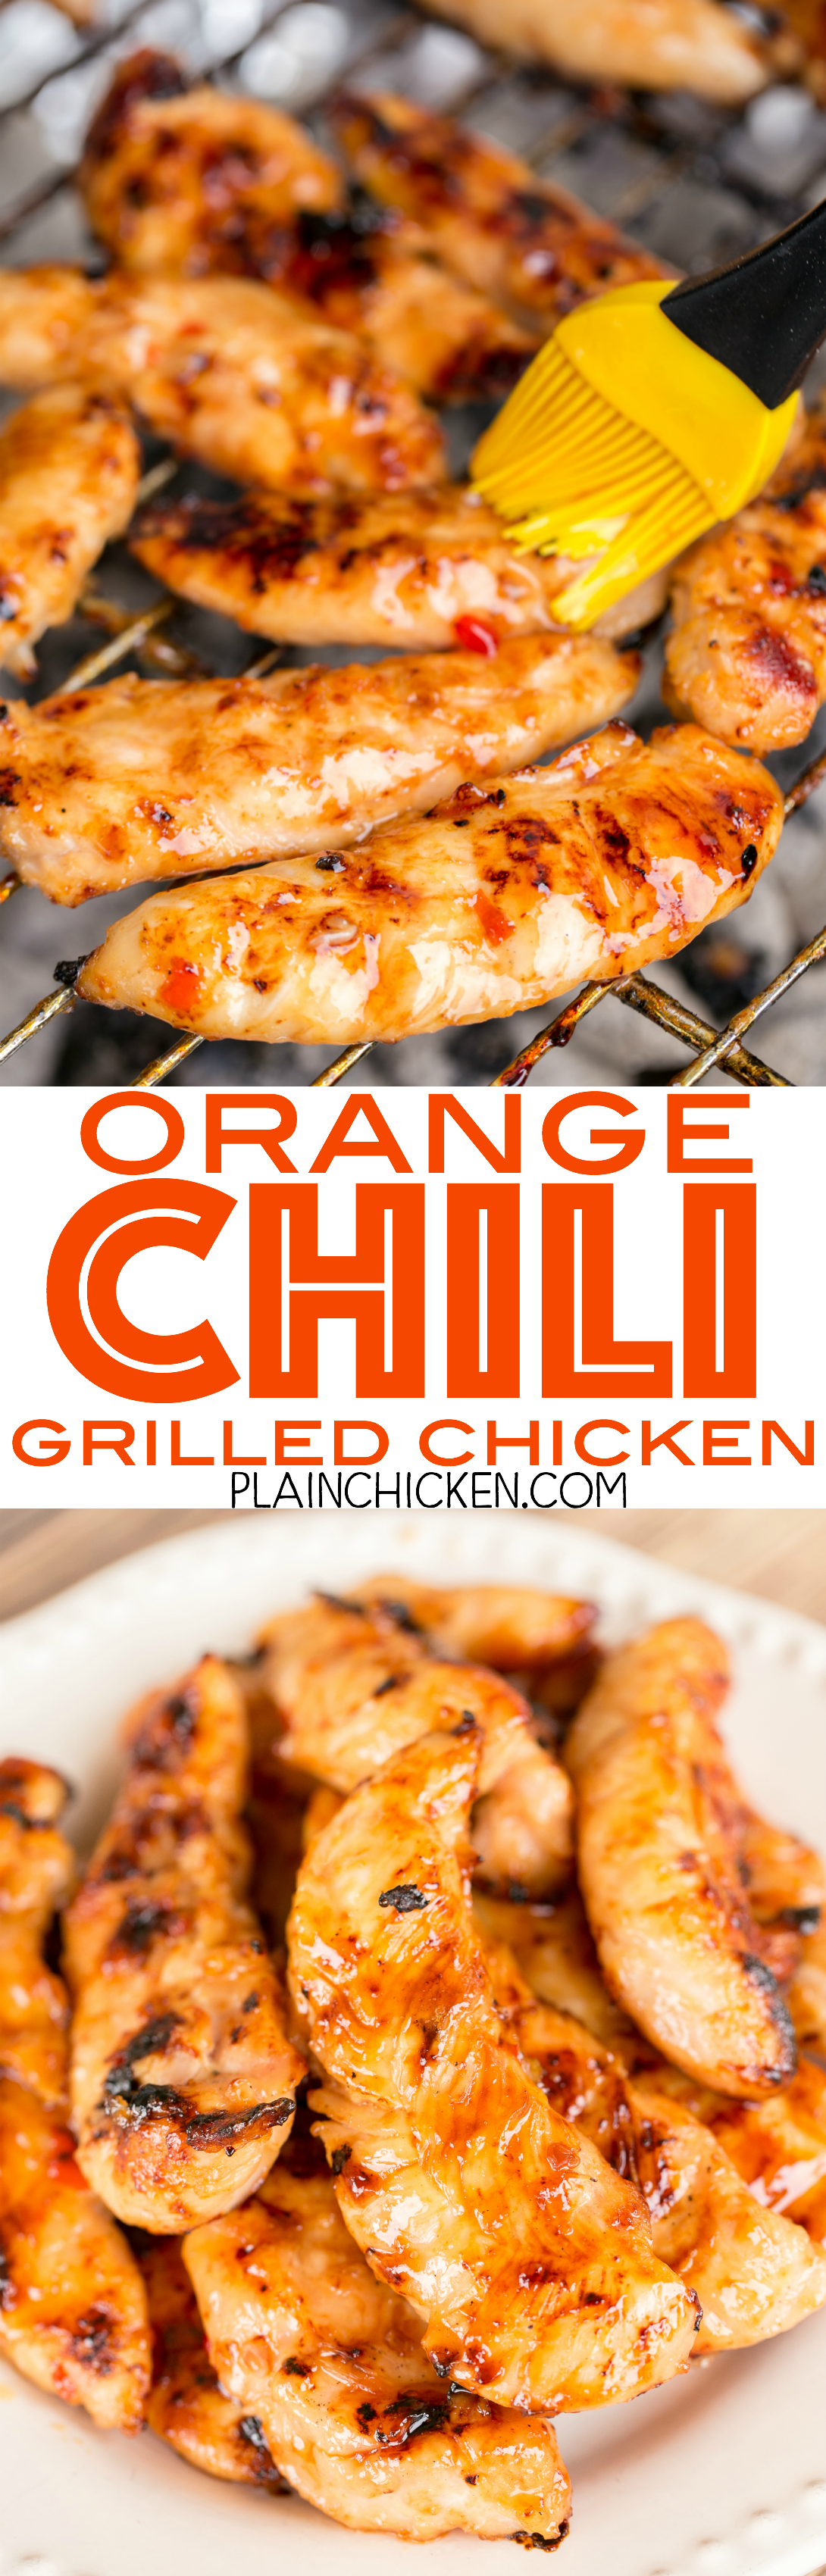 Orange Chili Grilled Chicken – seriously delicious! Only 4 ingredients! Chicken, sweet chili sauce, honey and orange juice. Grill